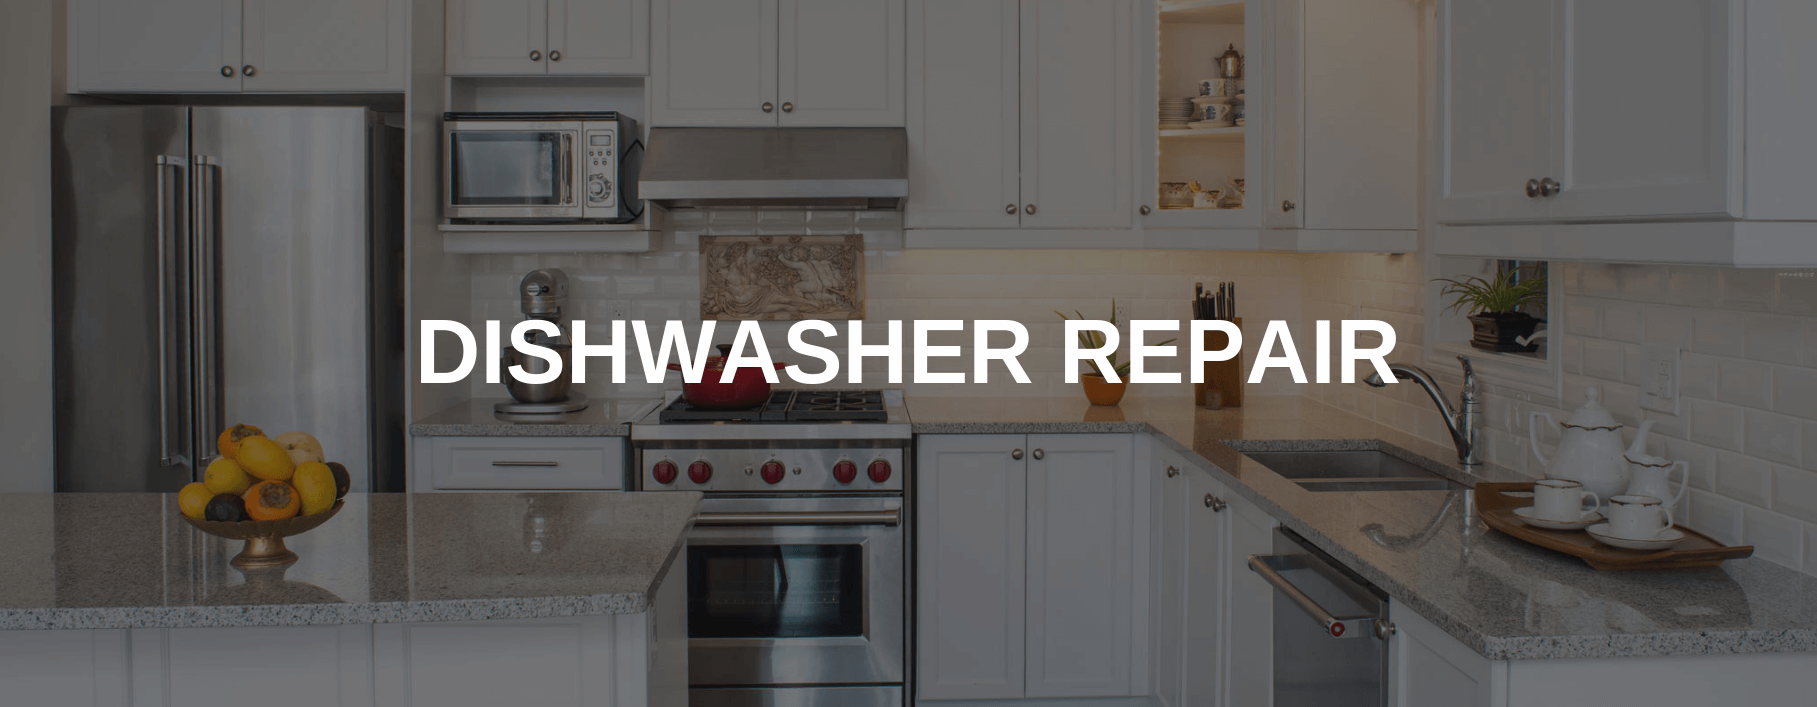 dishwasher repair colorado springs